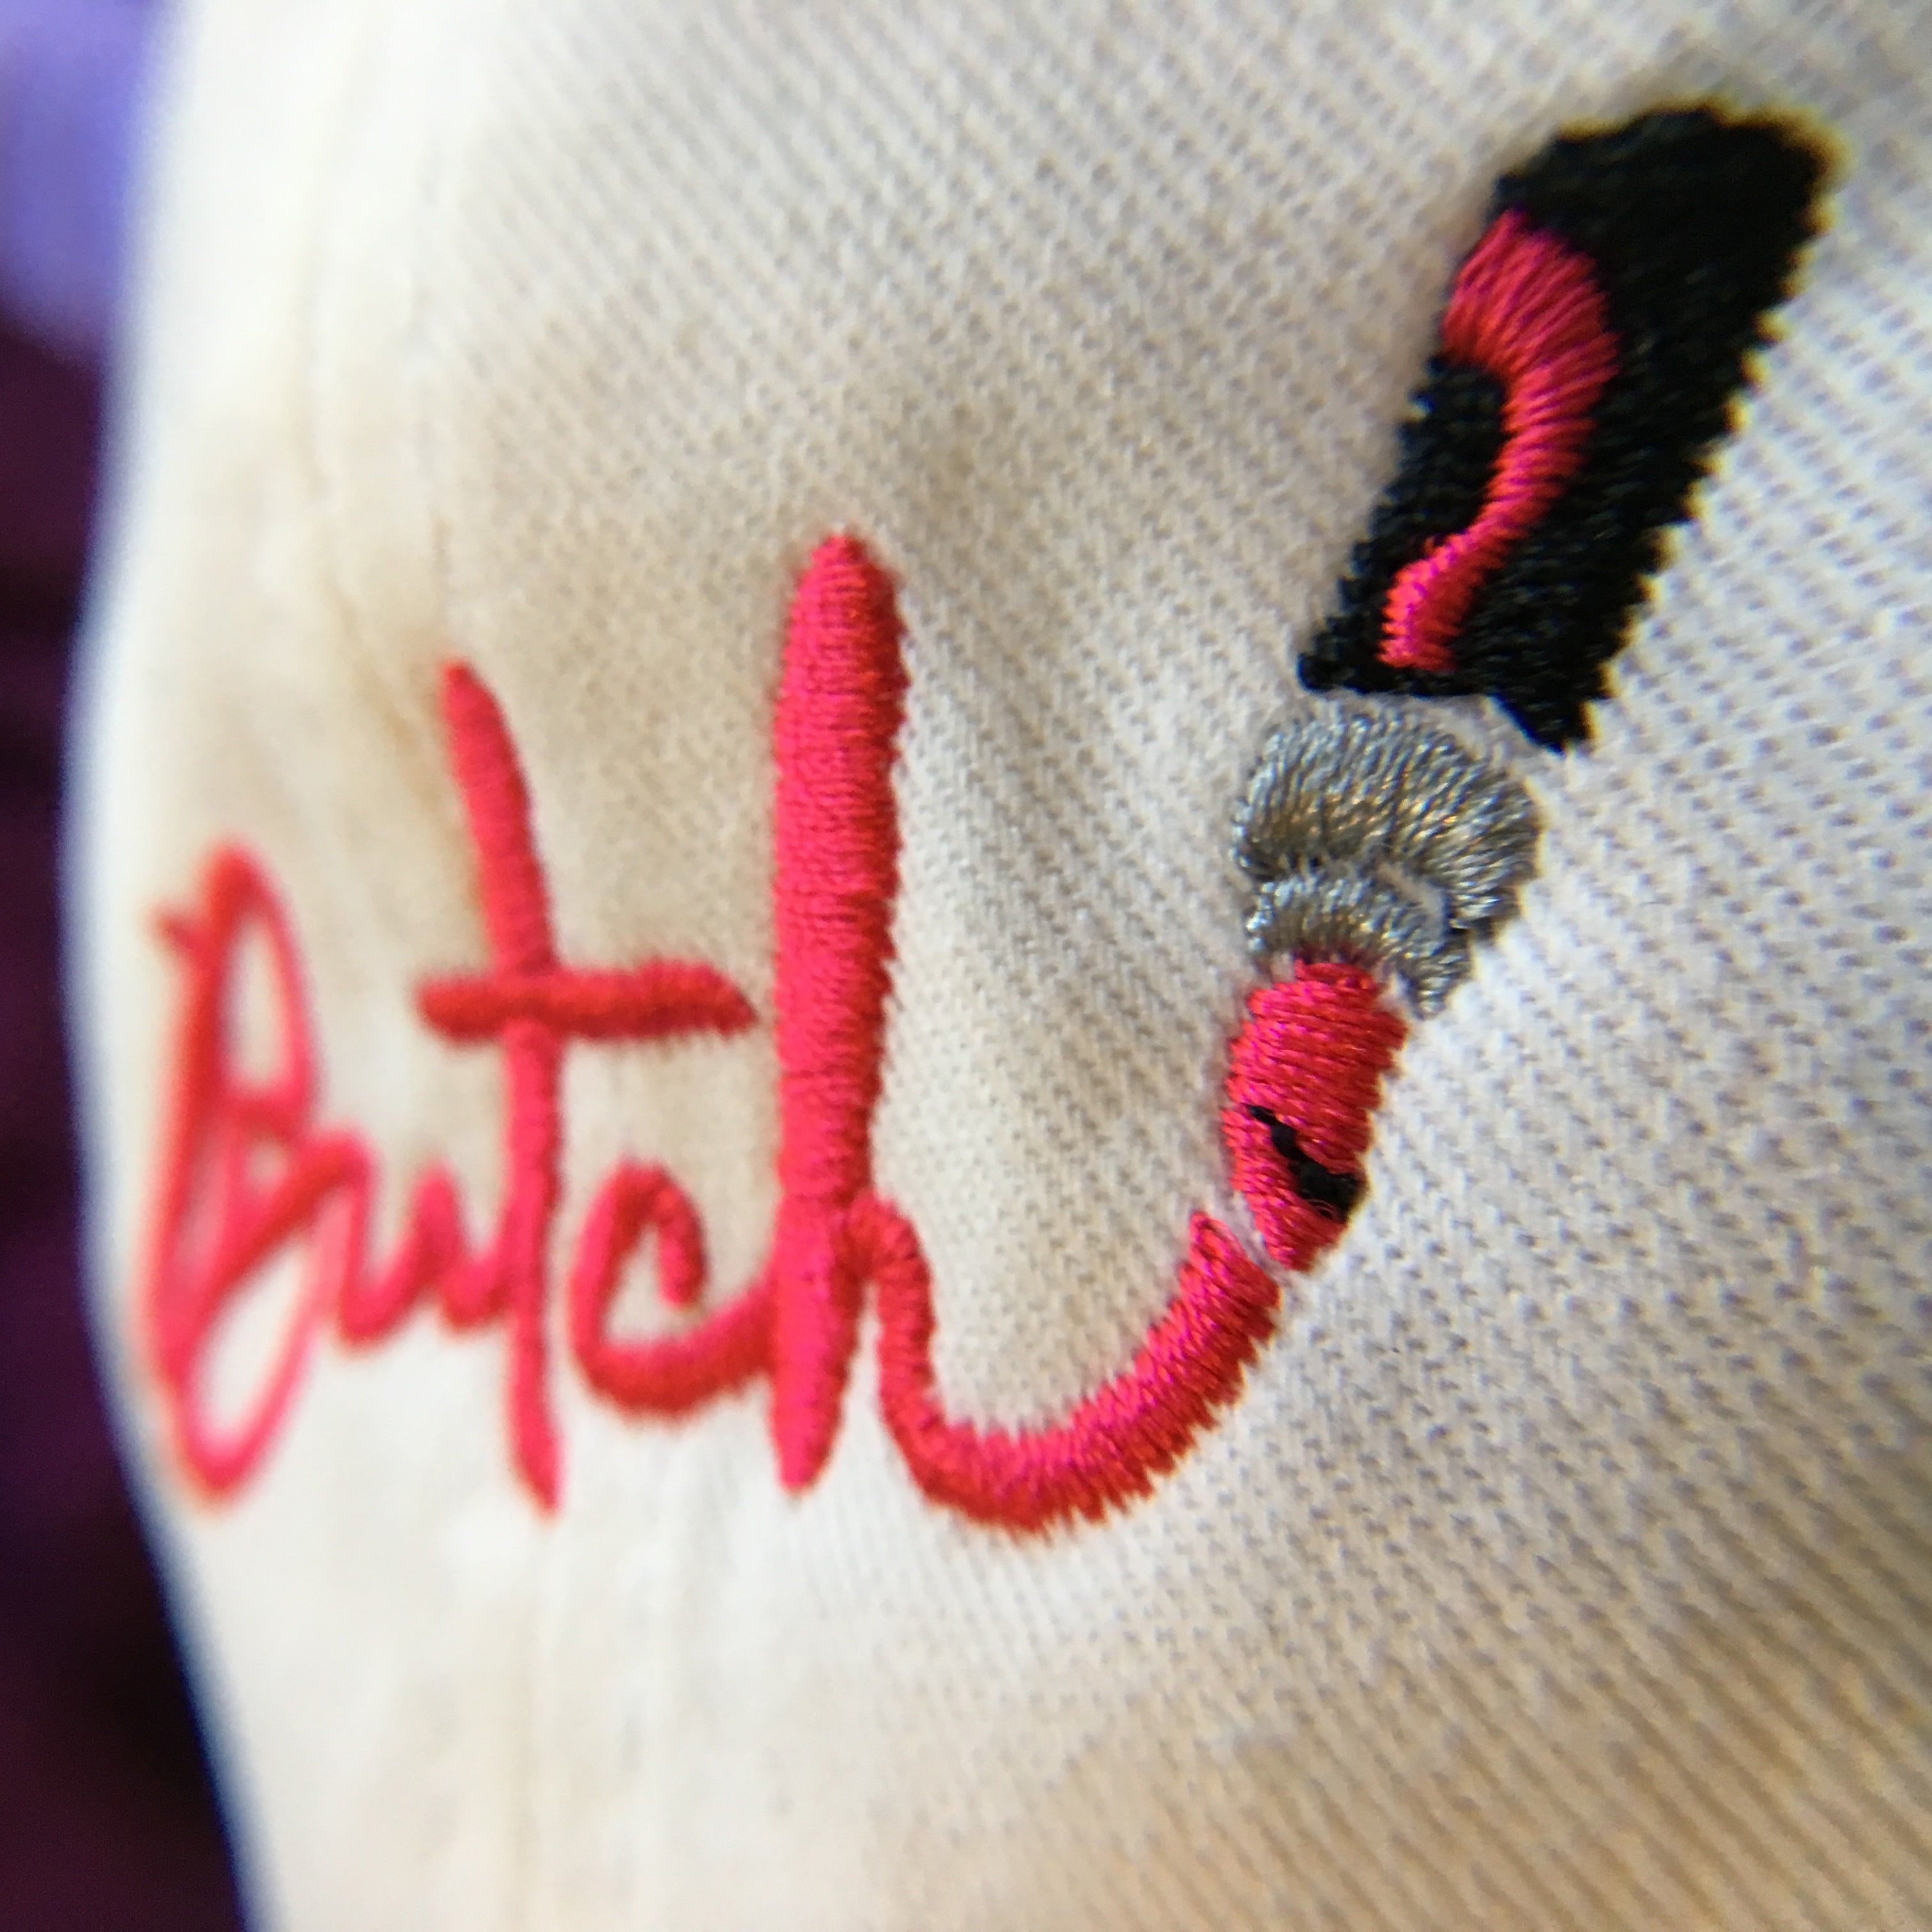 Butch Hat - GAYPIN'